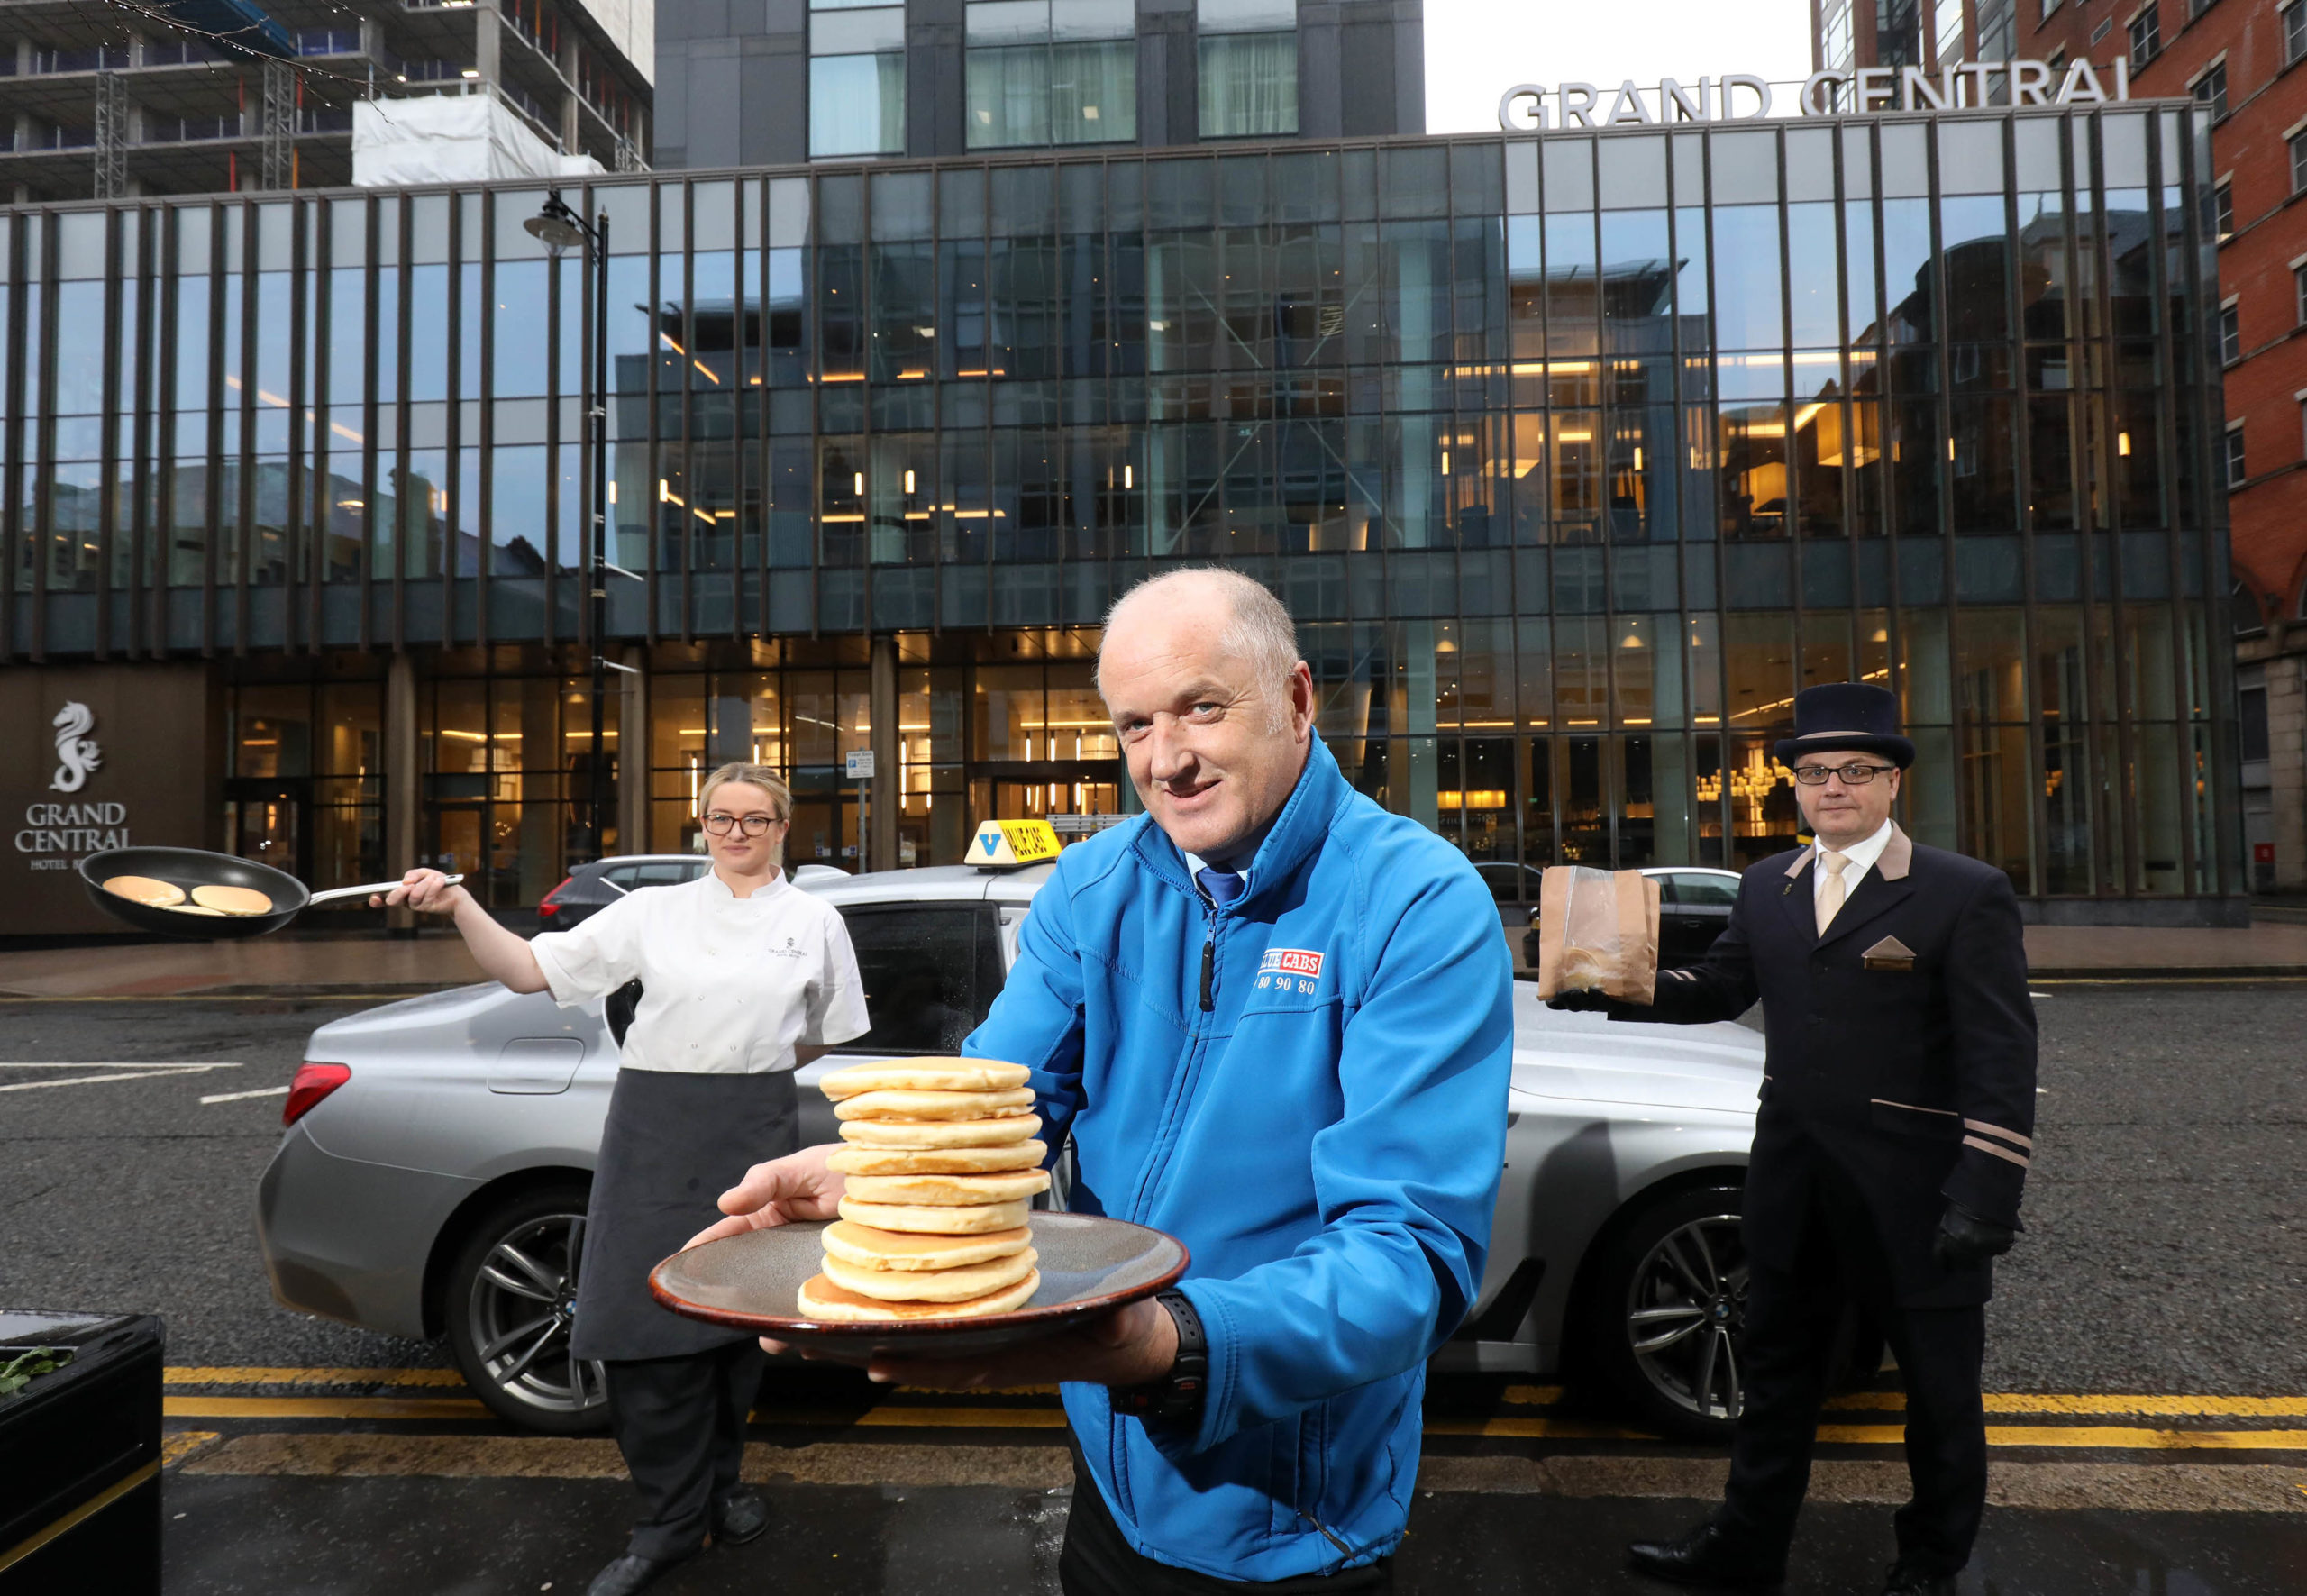 Martin Donnelly from Value Cabs is pictured with Grand Central Hotel's Pastry Chef, Caitlin Lopes, and Commissionaire, John Dodd, as the hotel gets ready to provide complimentary freshly made pancakes today for key health workers and passing taxi drivers to takeaway for Pancake Tuesday. Whilst the majority of hospitality remains closed, the Grand Central Hotel in Belfast is open for key workers and is inviting those passing by on Tuesday to enjoy some takeaway treats.